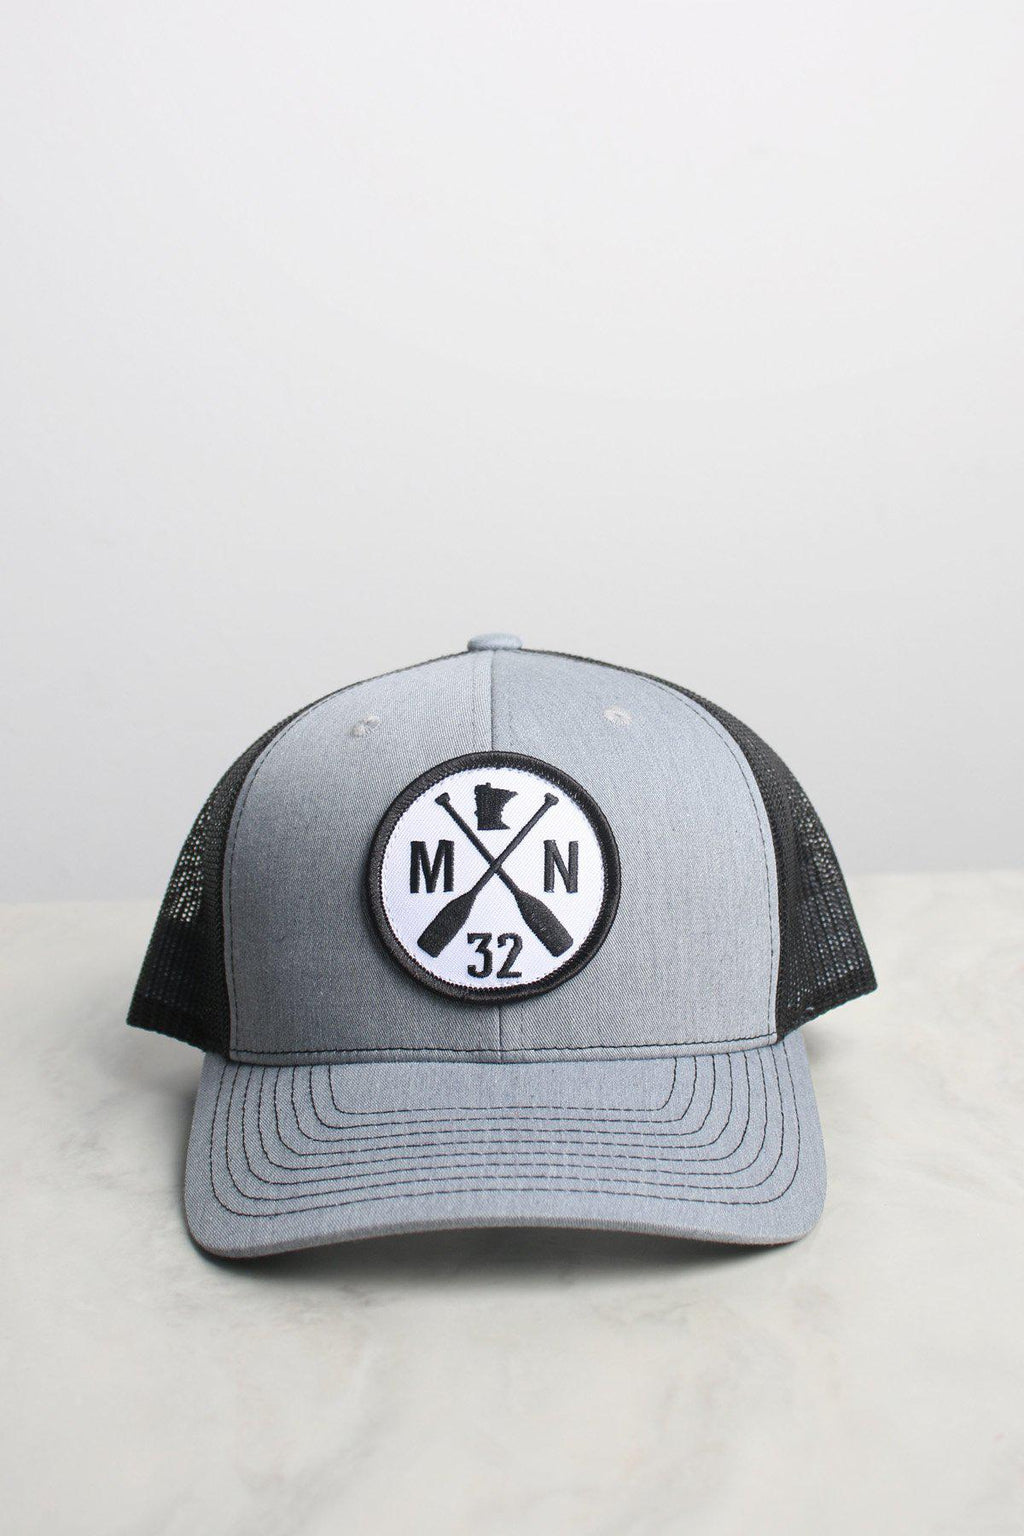 MN Paddle Patch Mesh Snapback - Gallery 512 Boutique